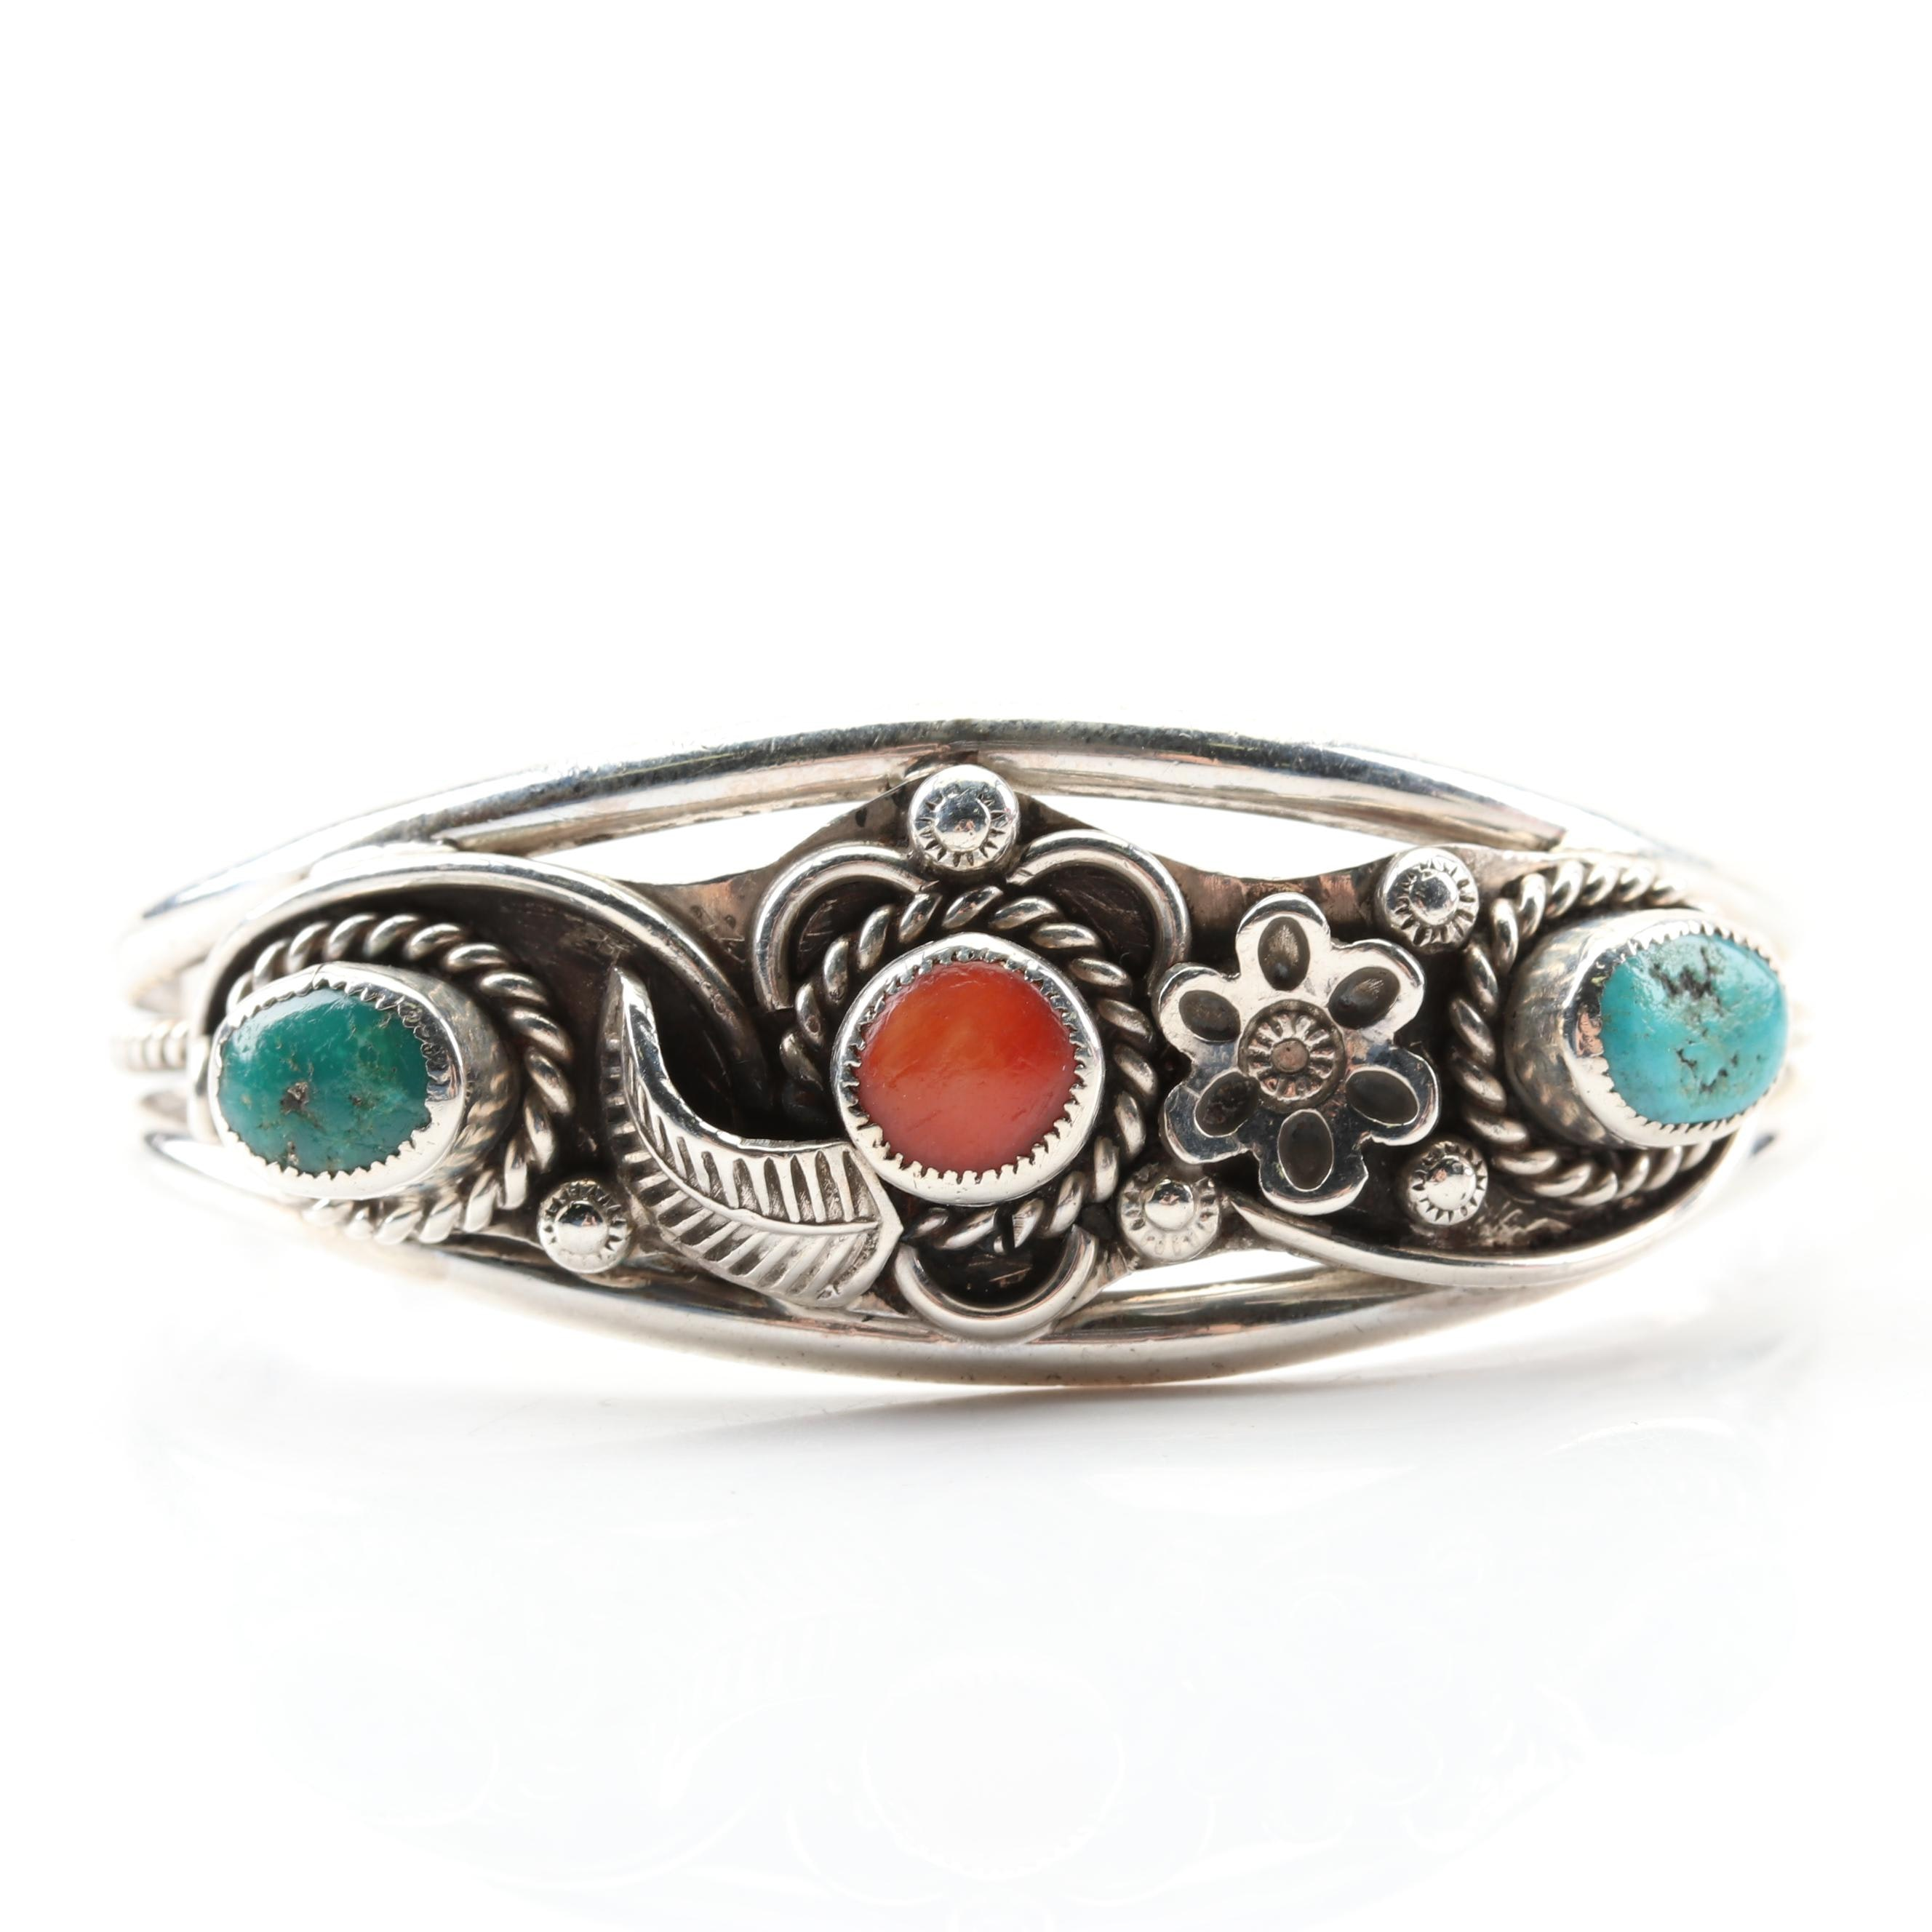 Child's Southwestern Style Sterling Silver Turquoise and Coral Cuff Bracelet